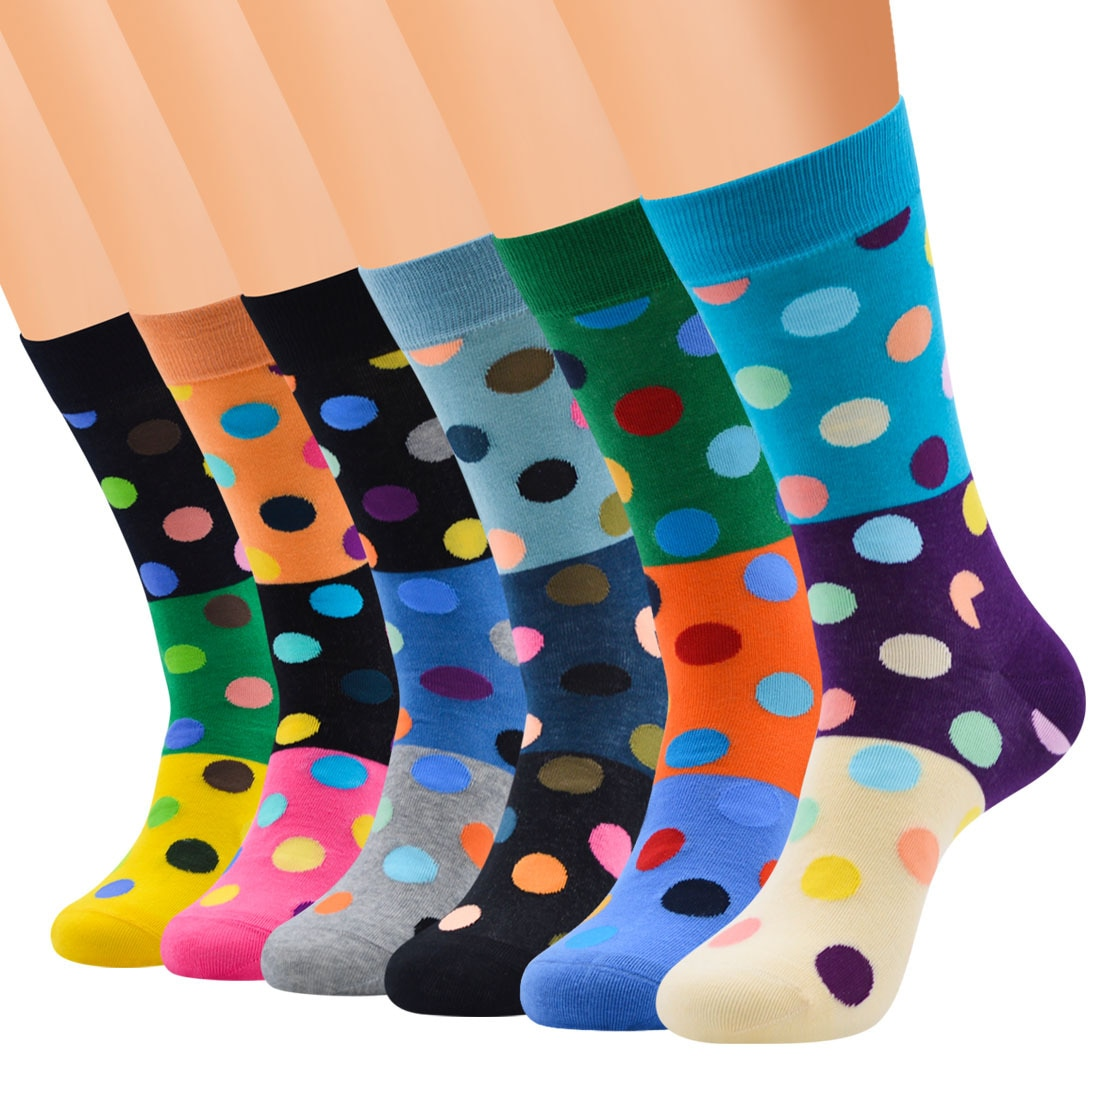 Modern New Fashion Combed Cotton Autumn And Winter Middle Tube Polka Dot Split Connecting Patchwork Socks  For Women Girls